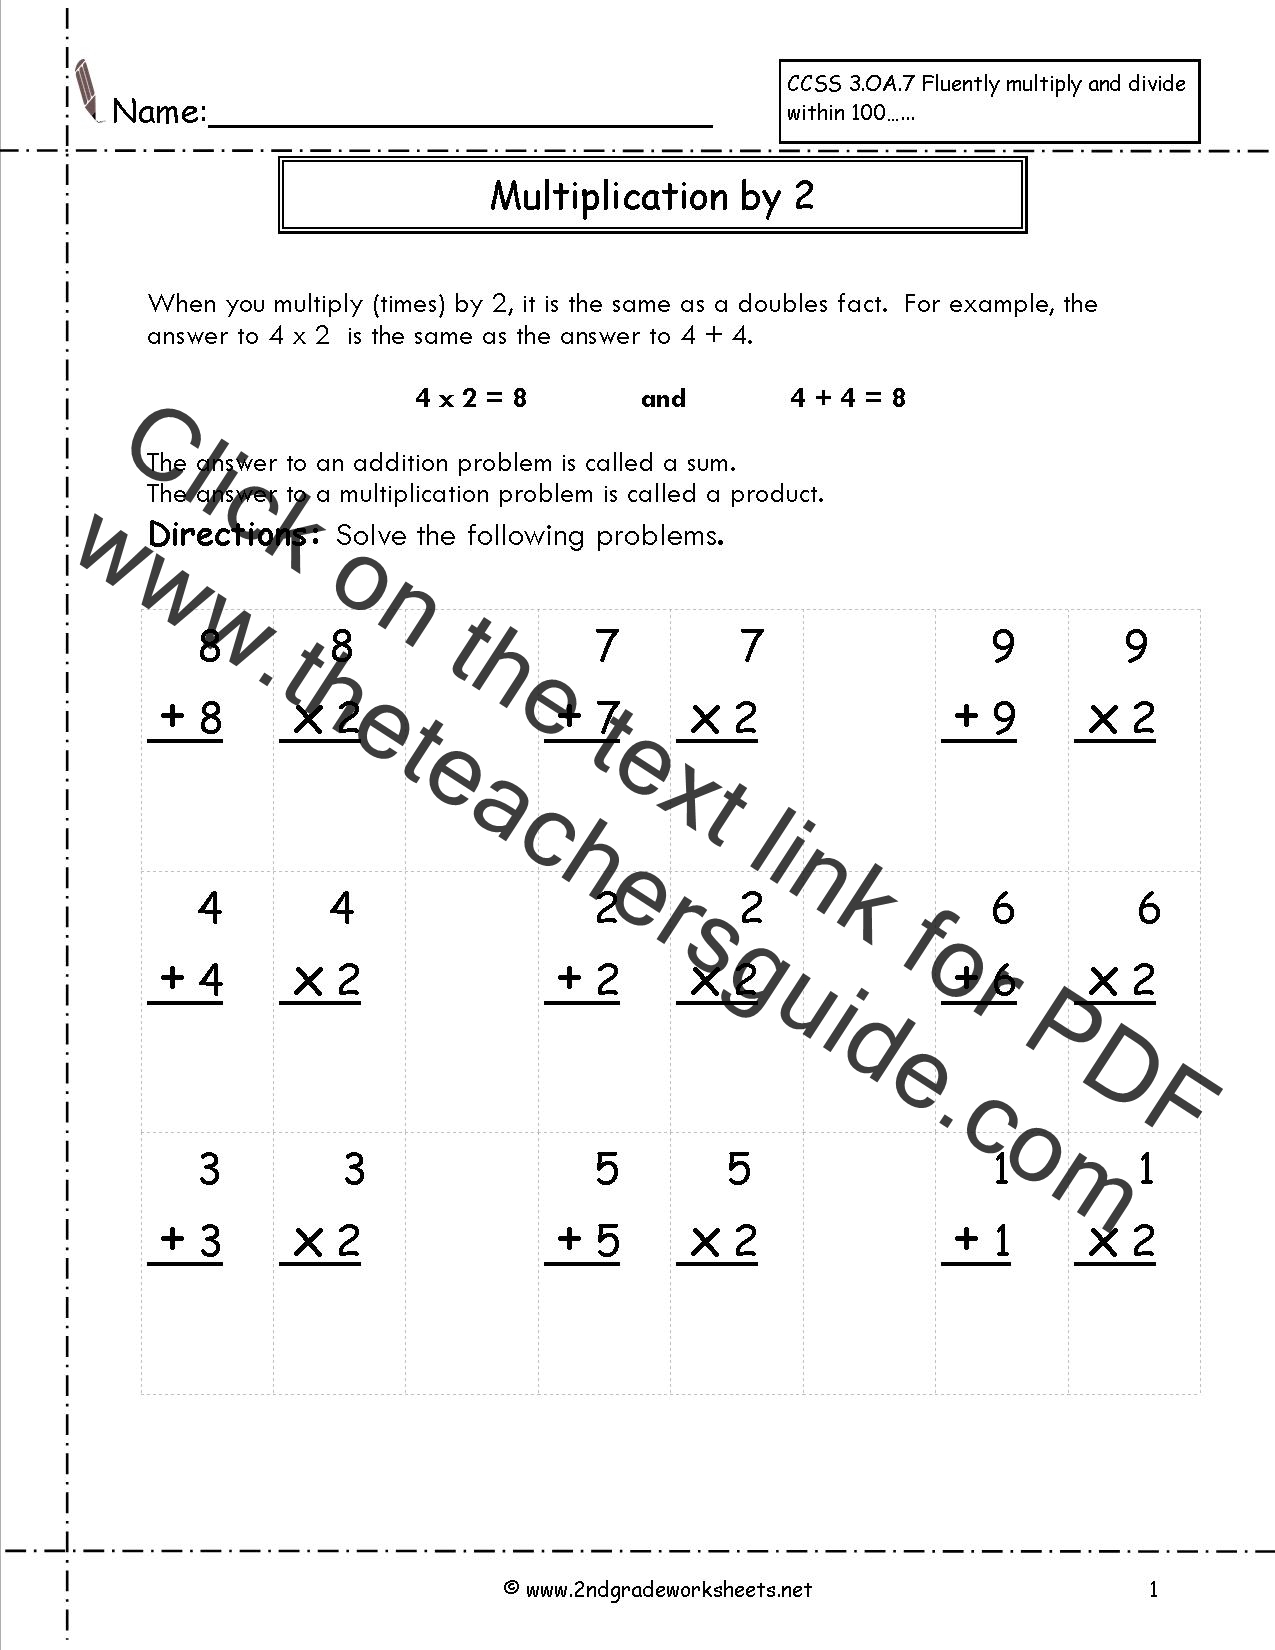 worksheet Multiplication By 2 Worksheets multiplication worksheets and printouts worksheet